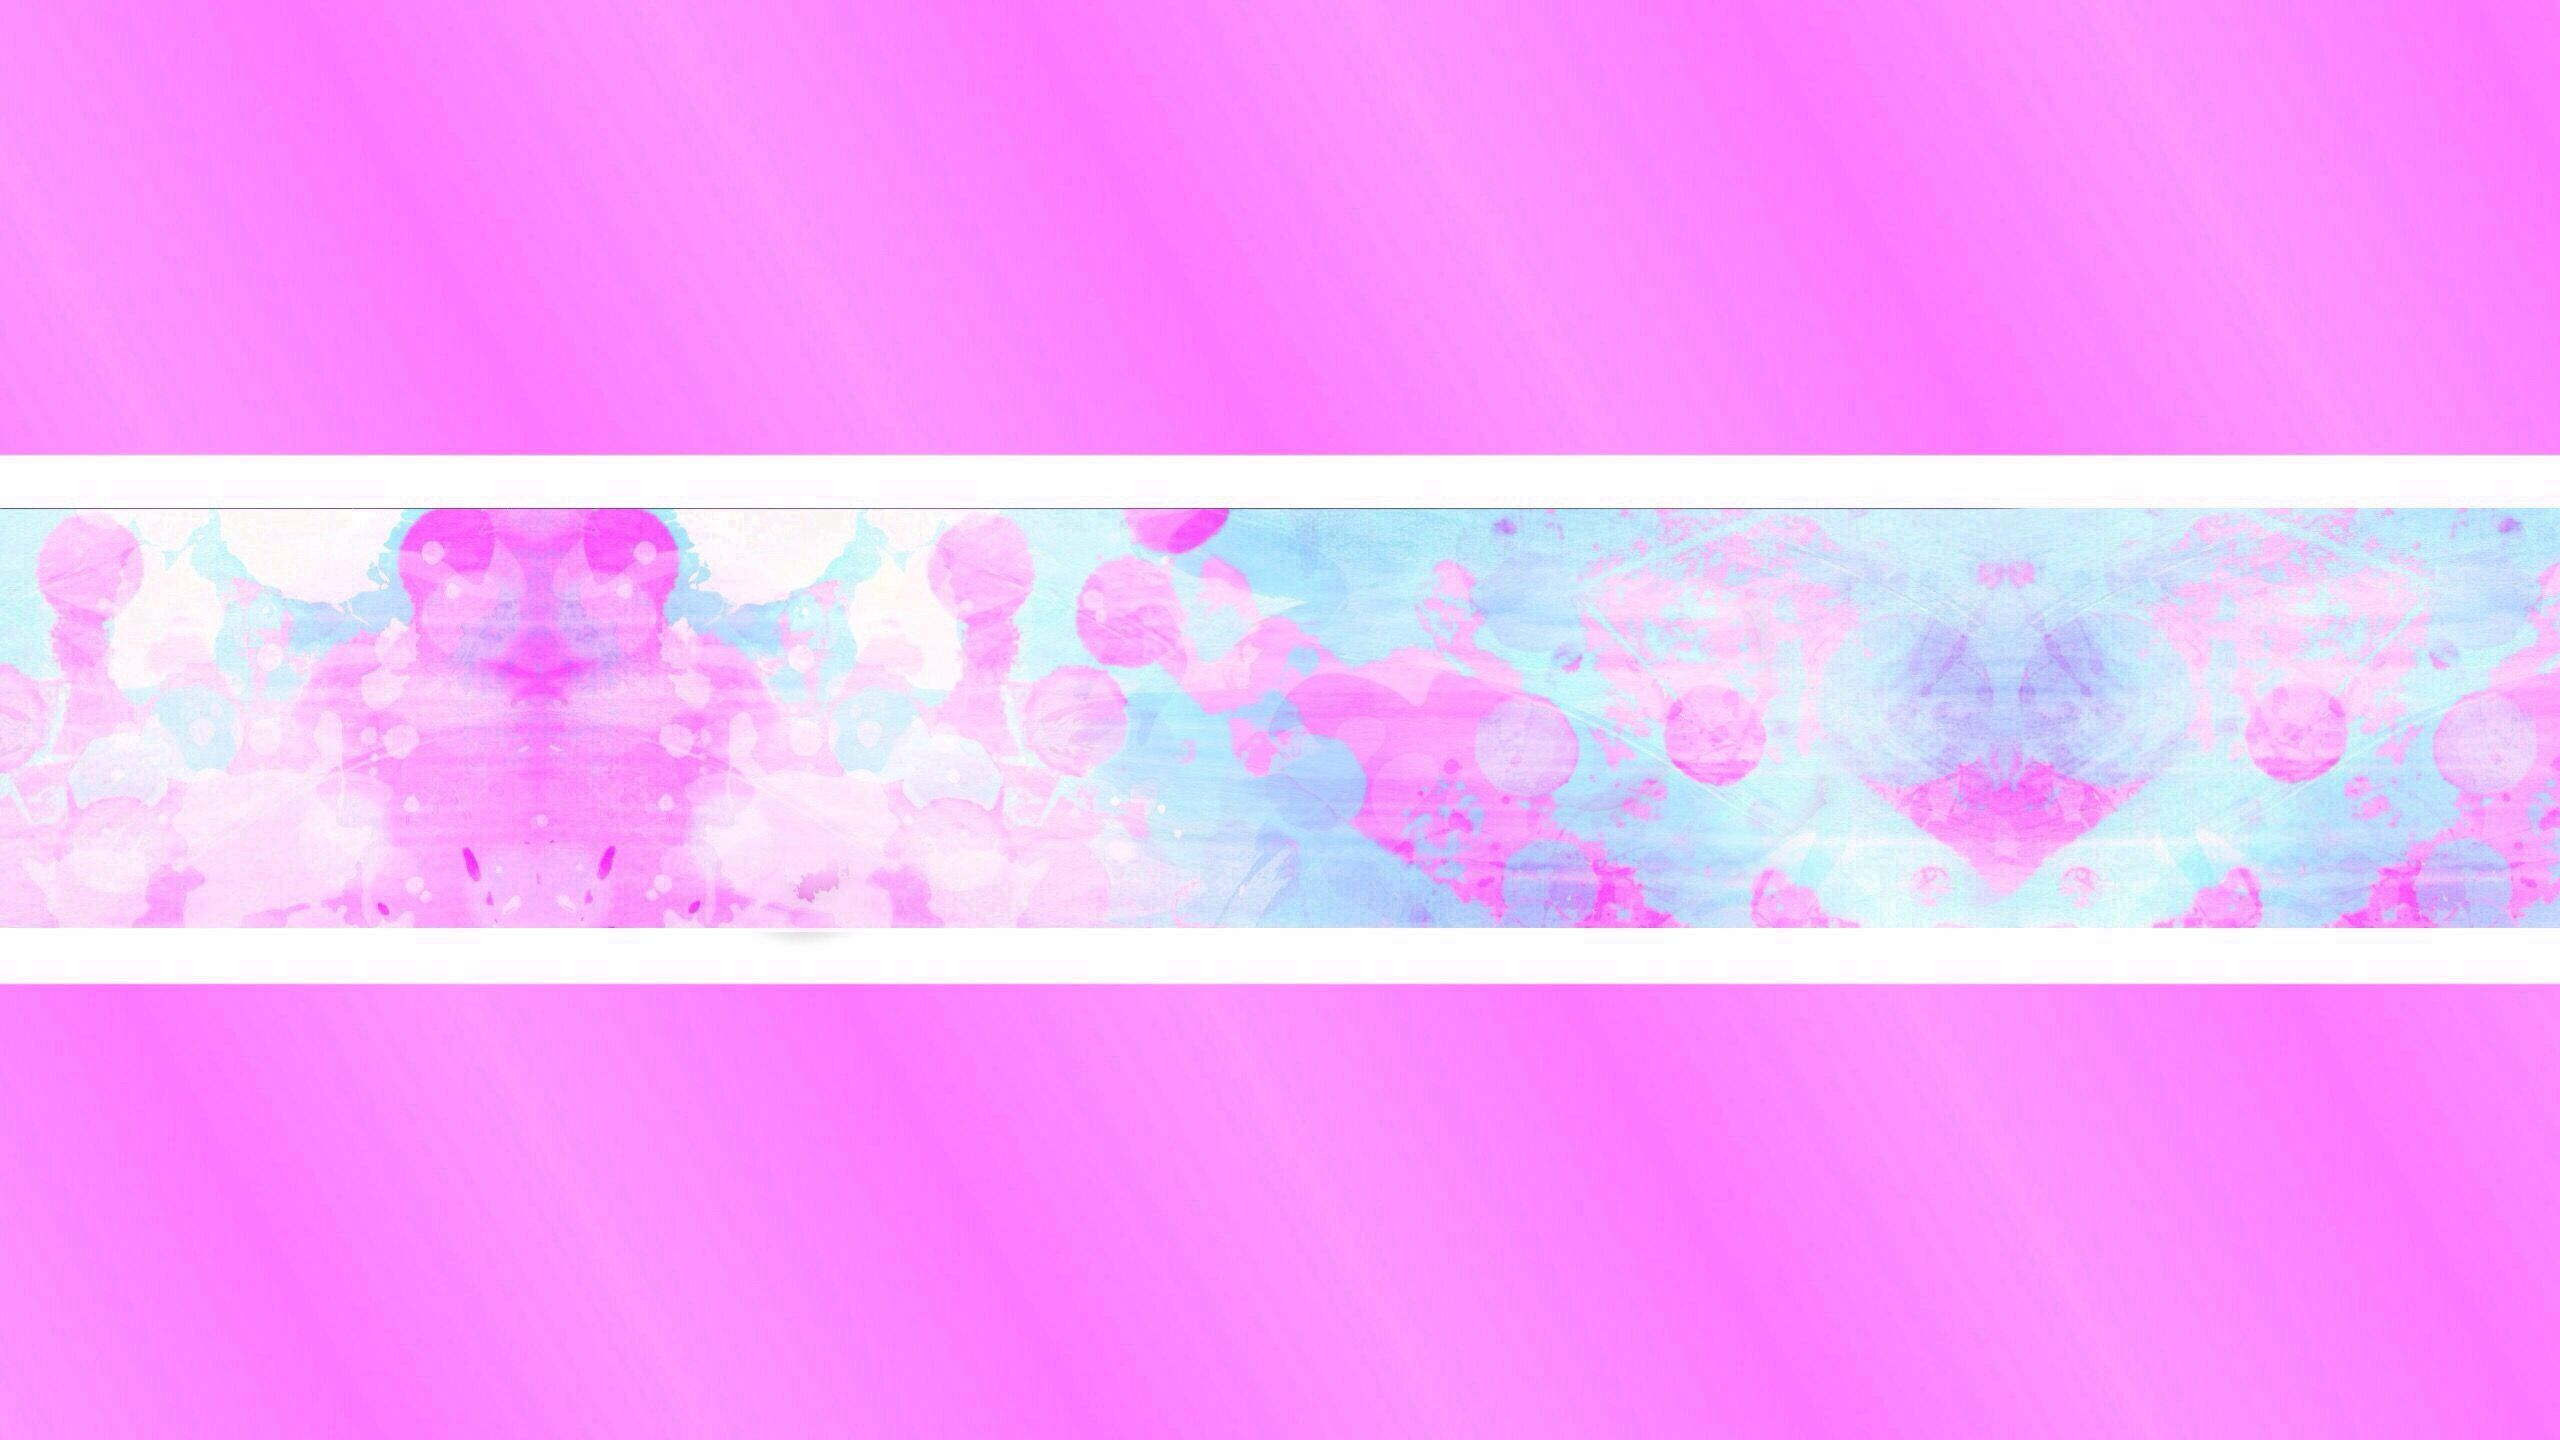 Pink/Blue Youtube Banner Template — imgbb.com in 2019.